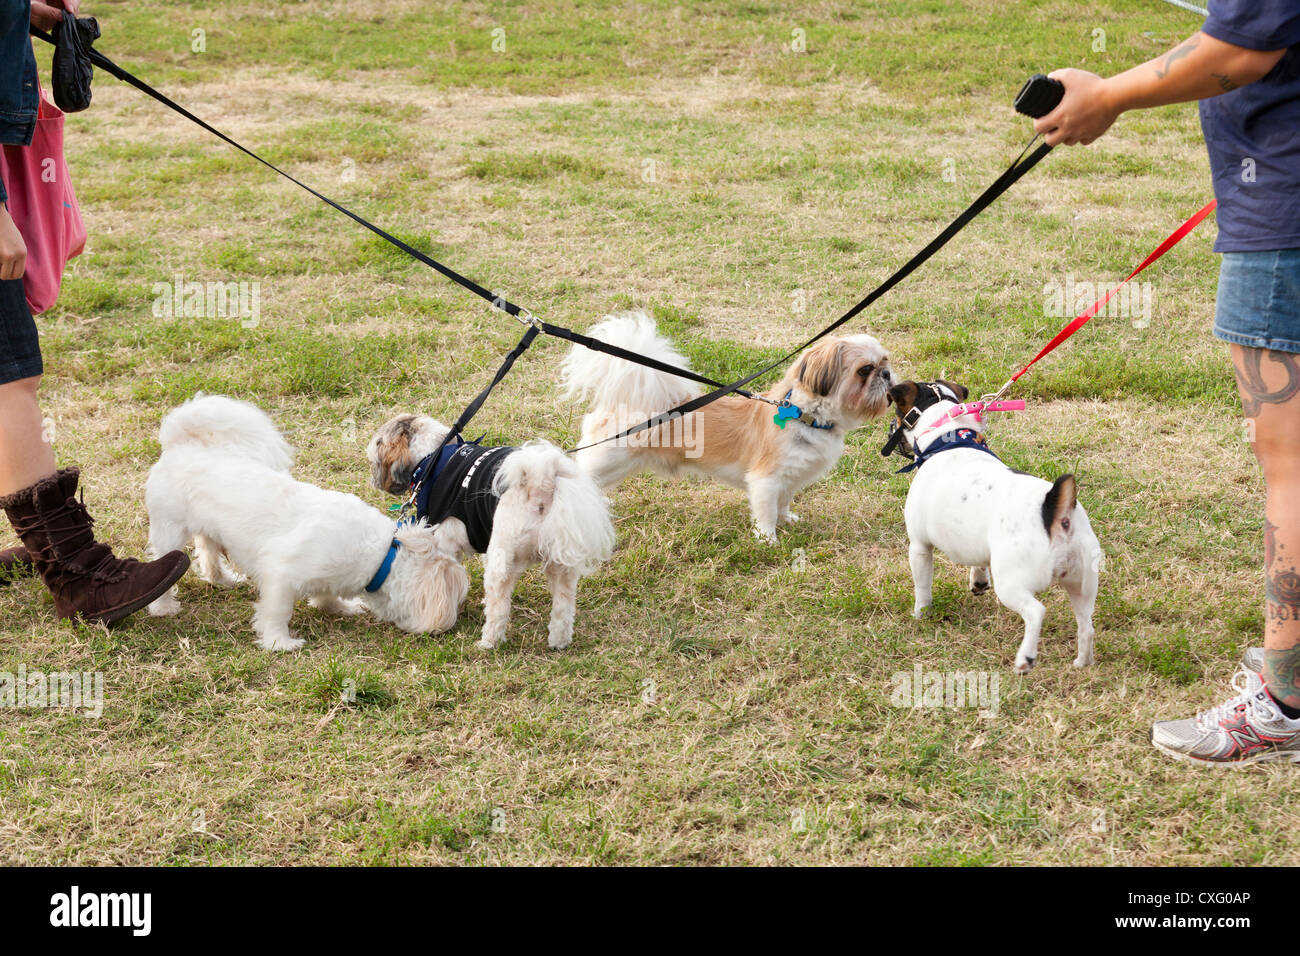 Small dogs meeting at the dog park - Stock Image